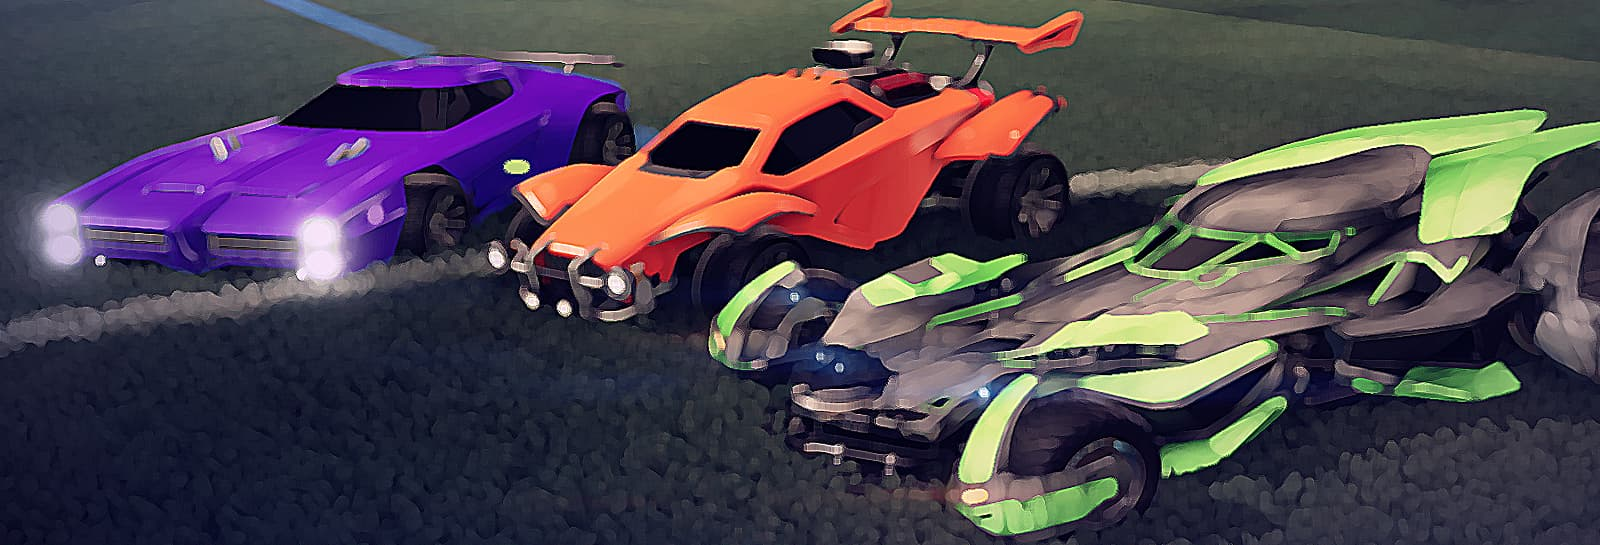 Which car to choose in the Rocket League?